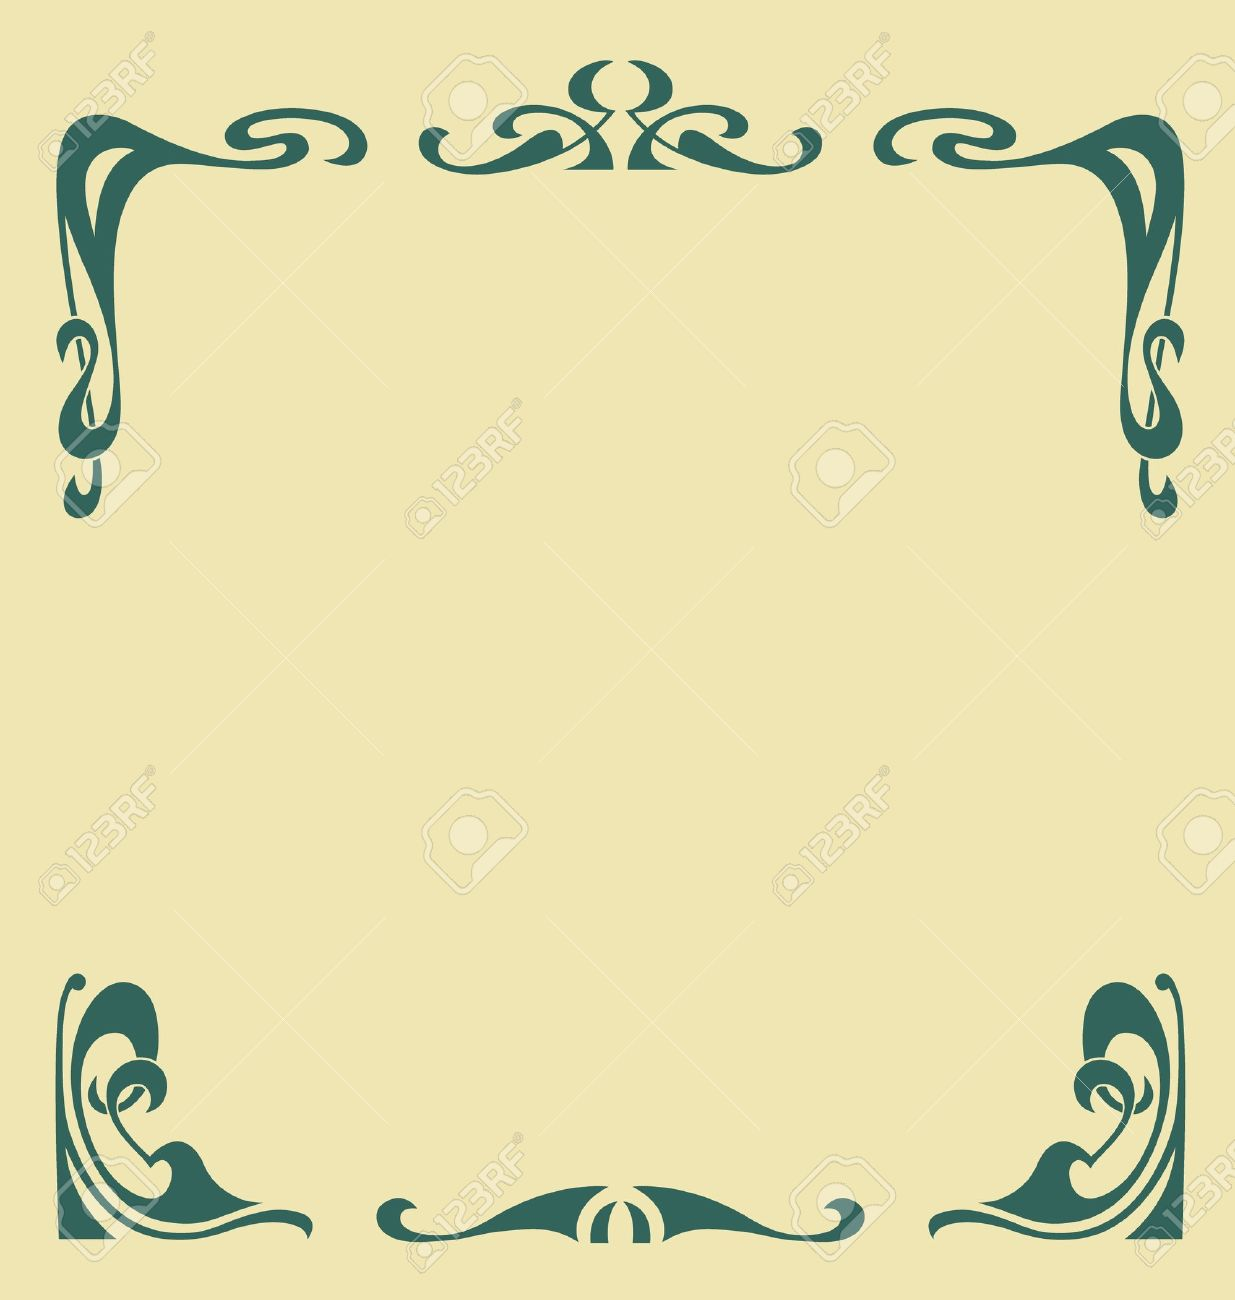 447 Secession Style Stock Vector Illustration And Royalty Free.